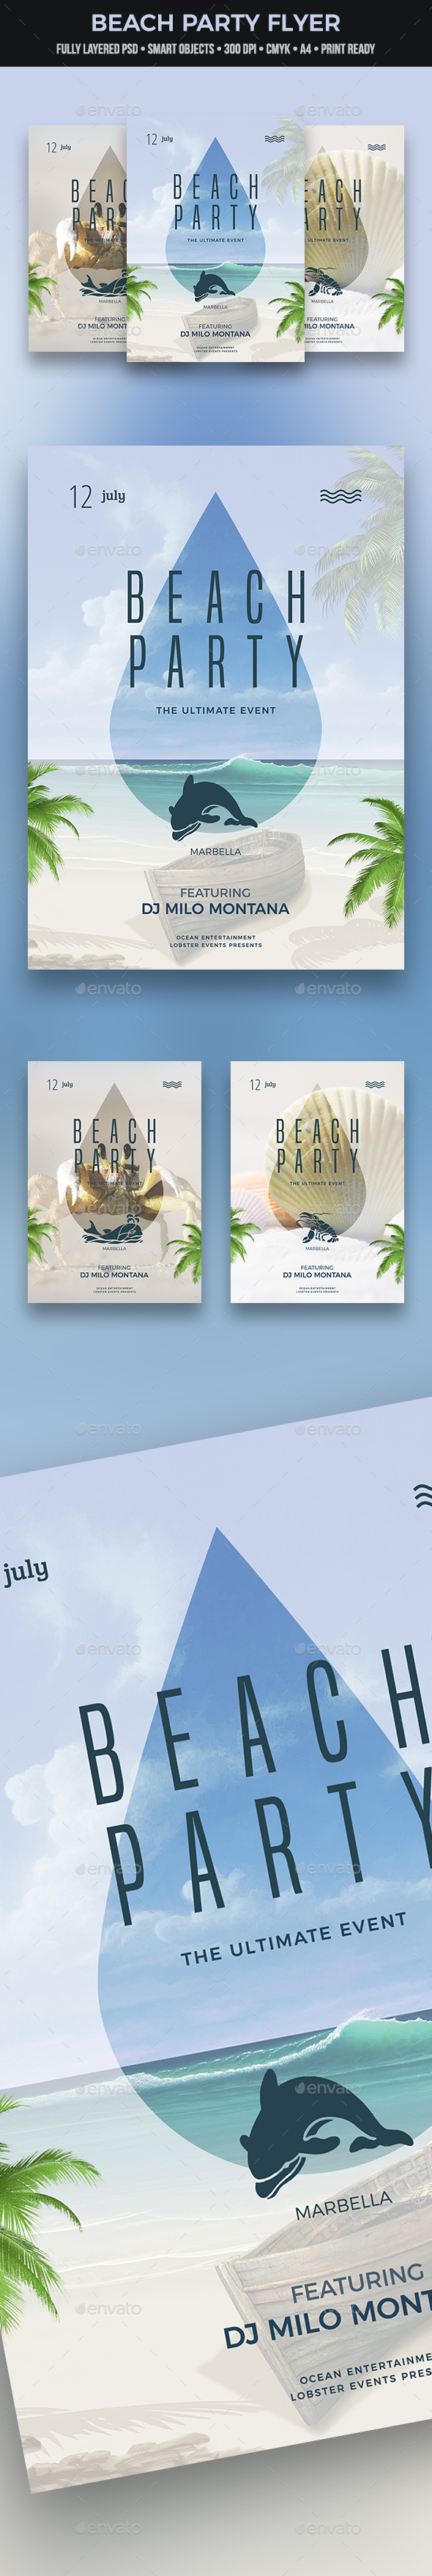 Beach Party Flyer - Clubs & Parties Events